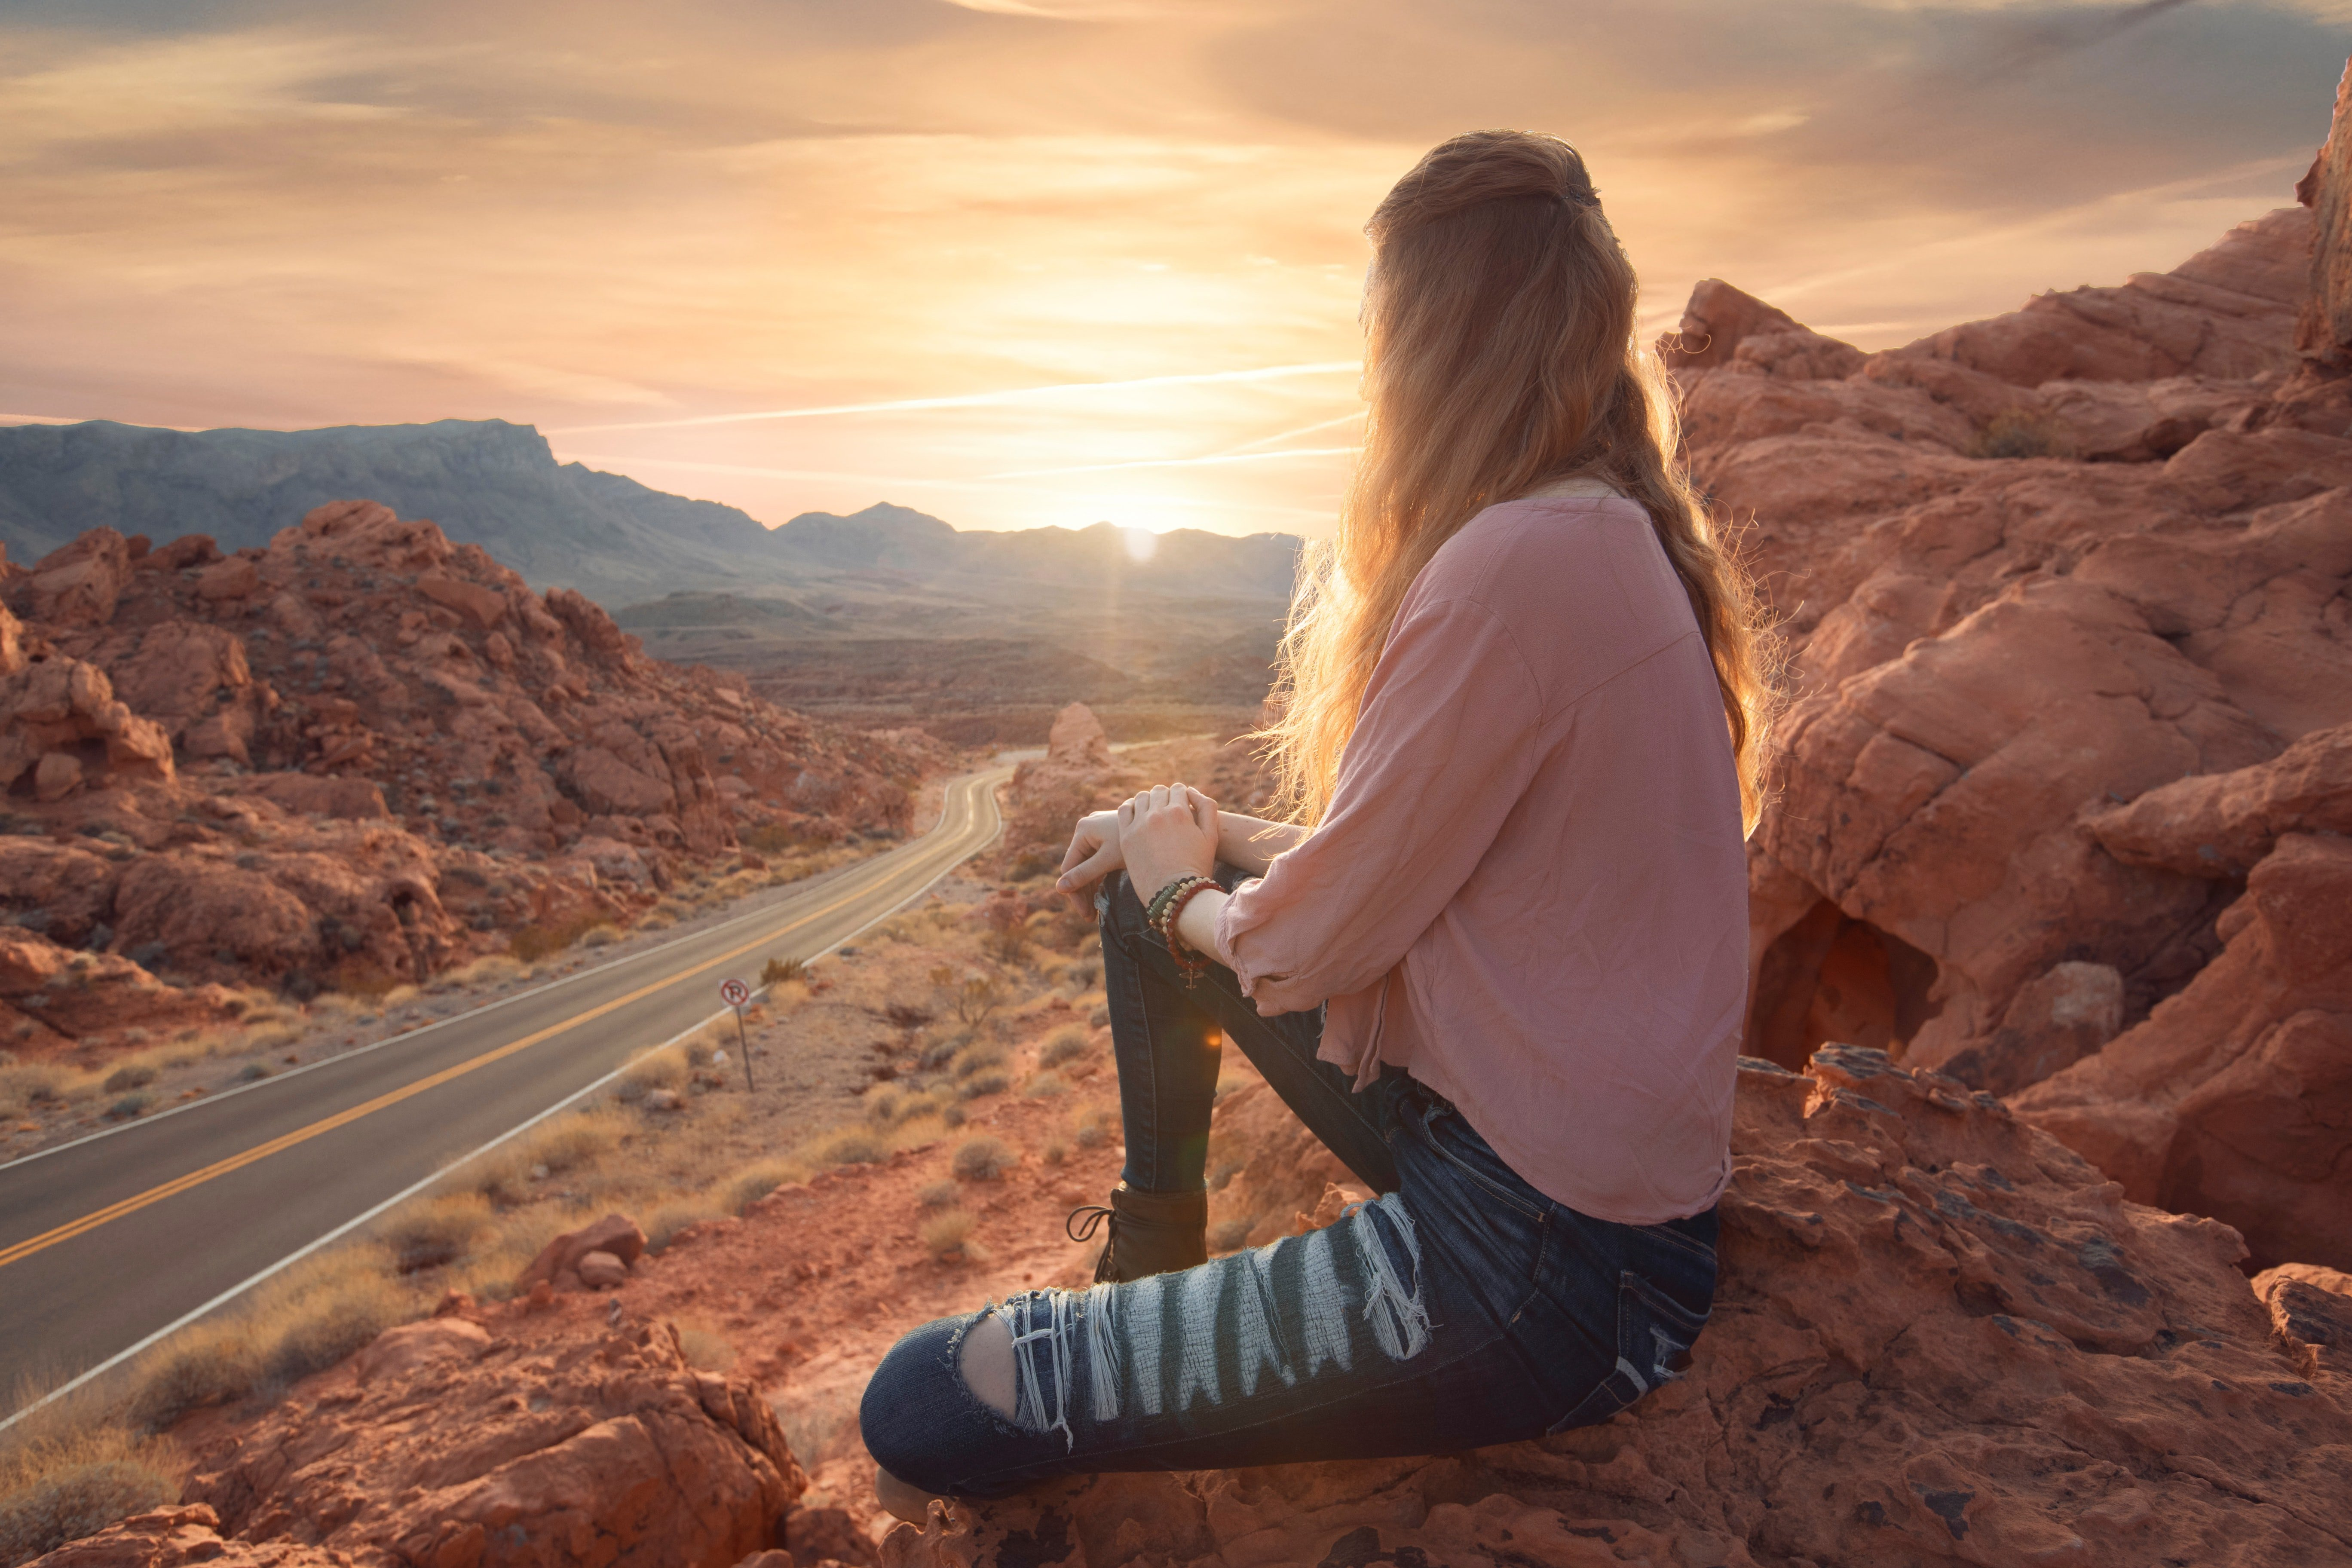 A young woman sits on a rocky mountainside staring down a long stretch of road into the sunrise.